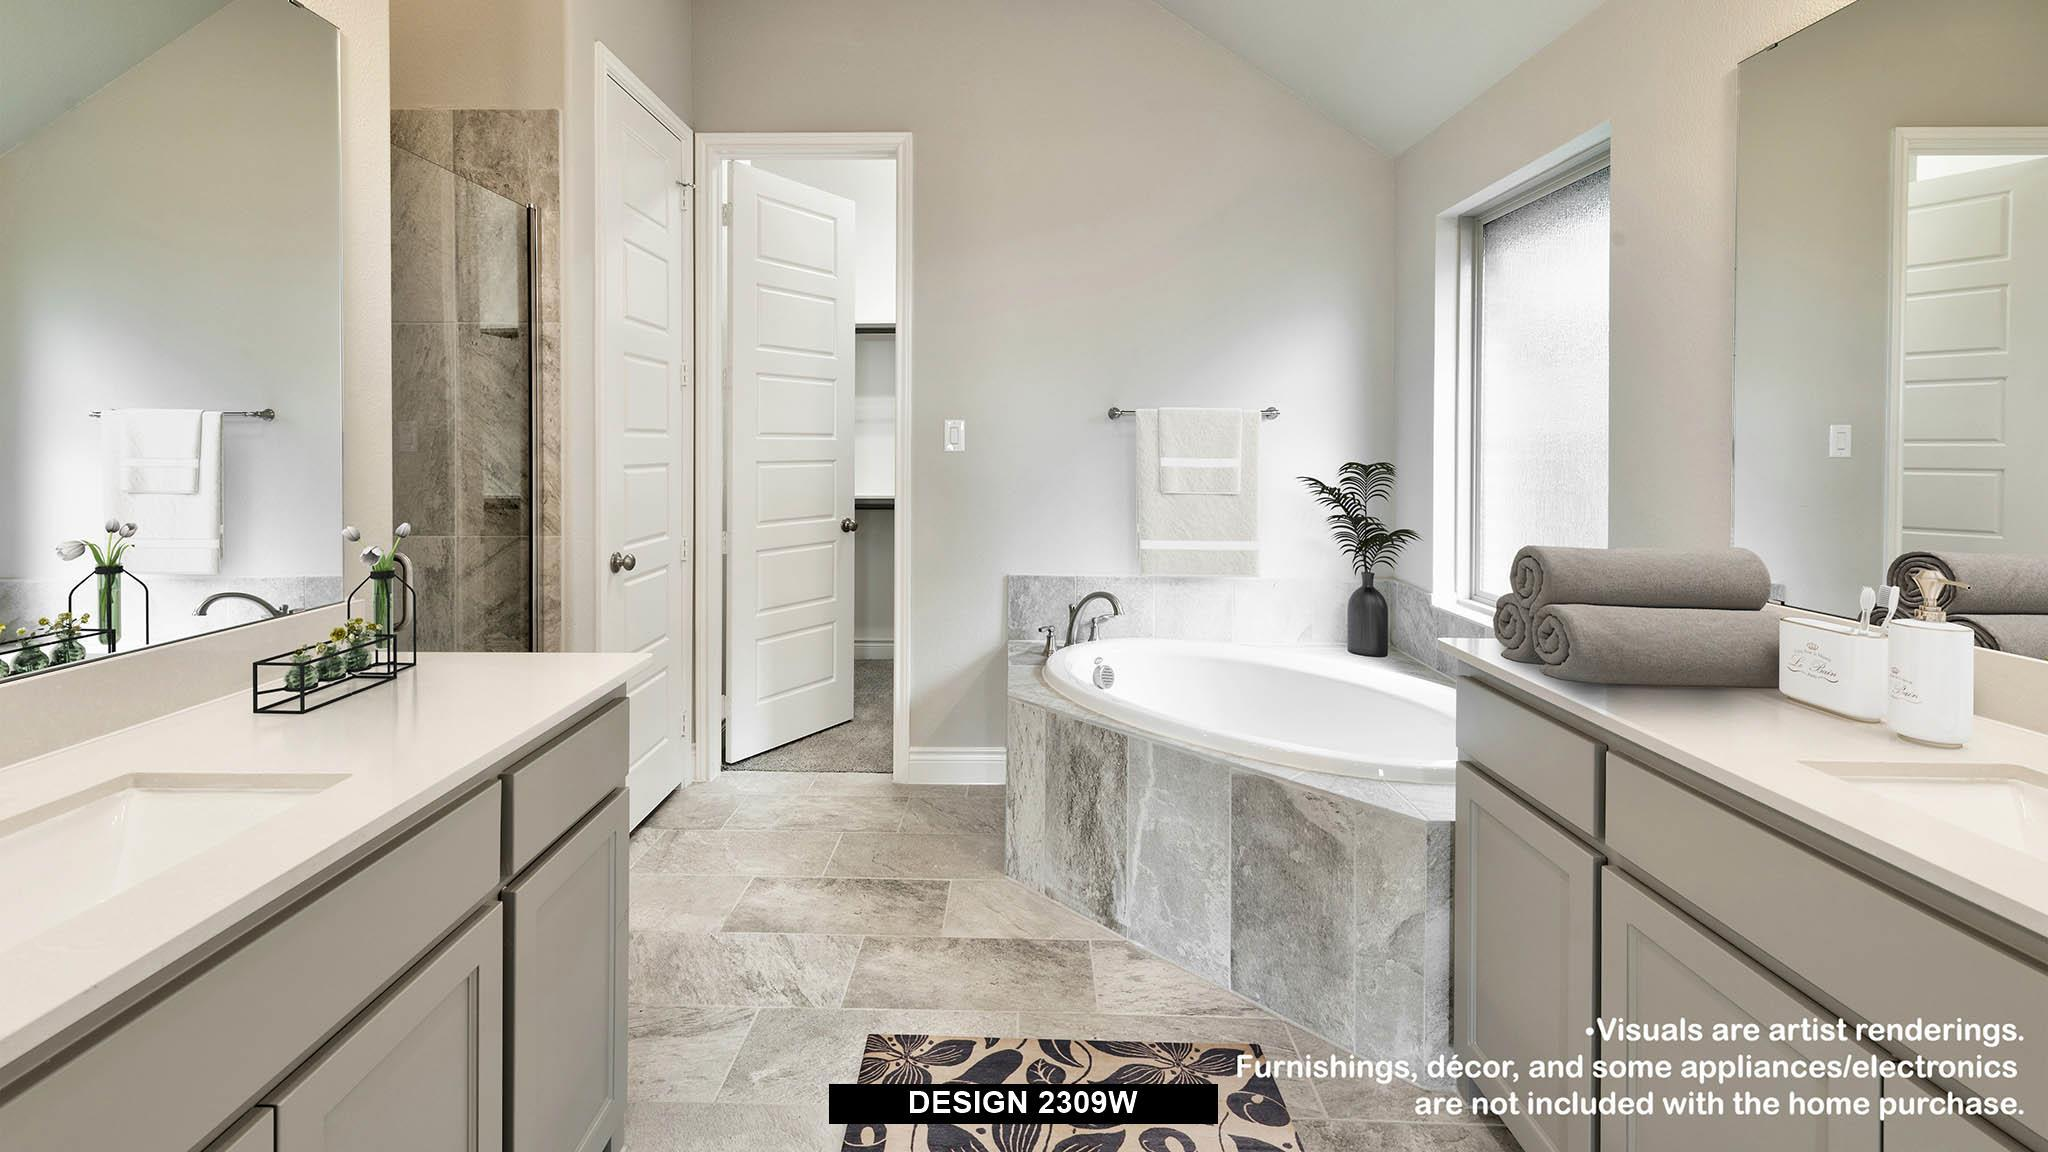 Bathroom featured in the 2309W By Perry Homes in Dallas, TX